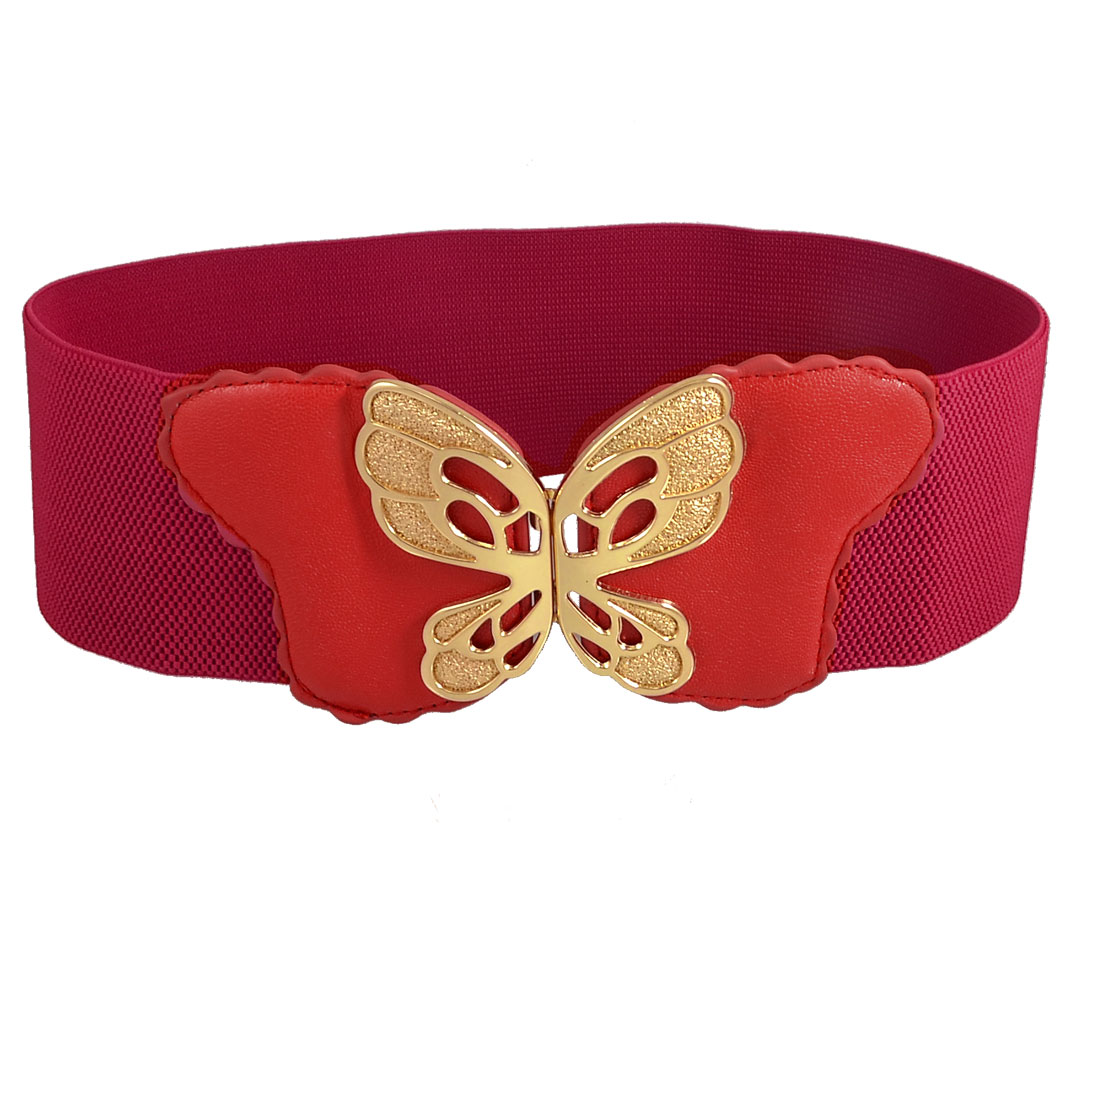 Hook Buckle Gold Tone Metal Butterfly Decor Red Stretchy Waist Belt Band